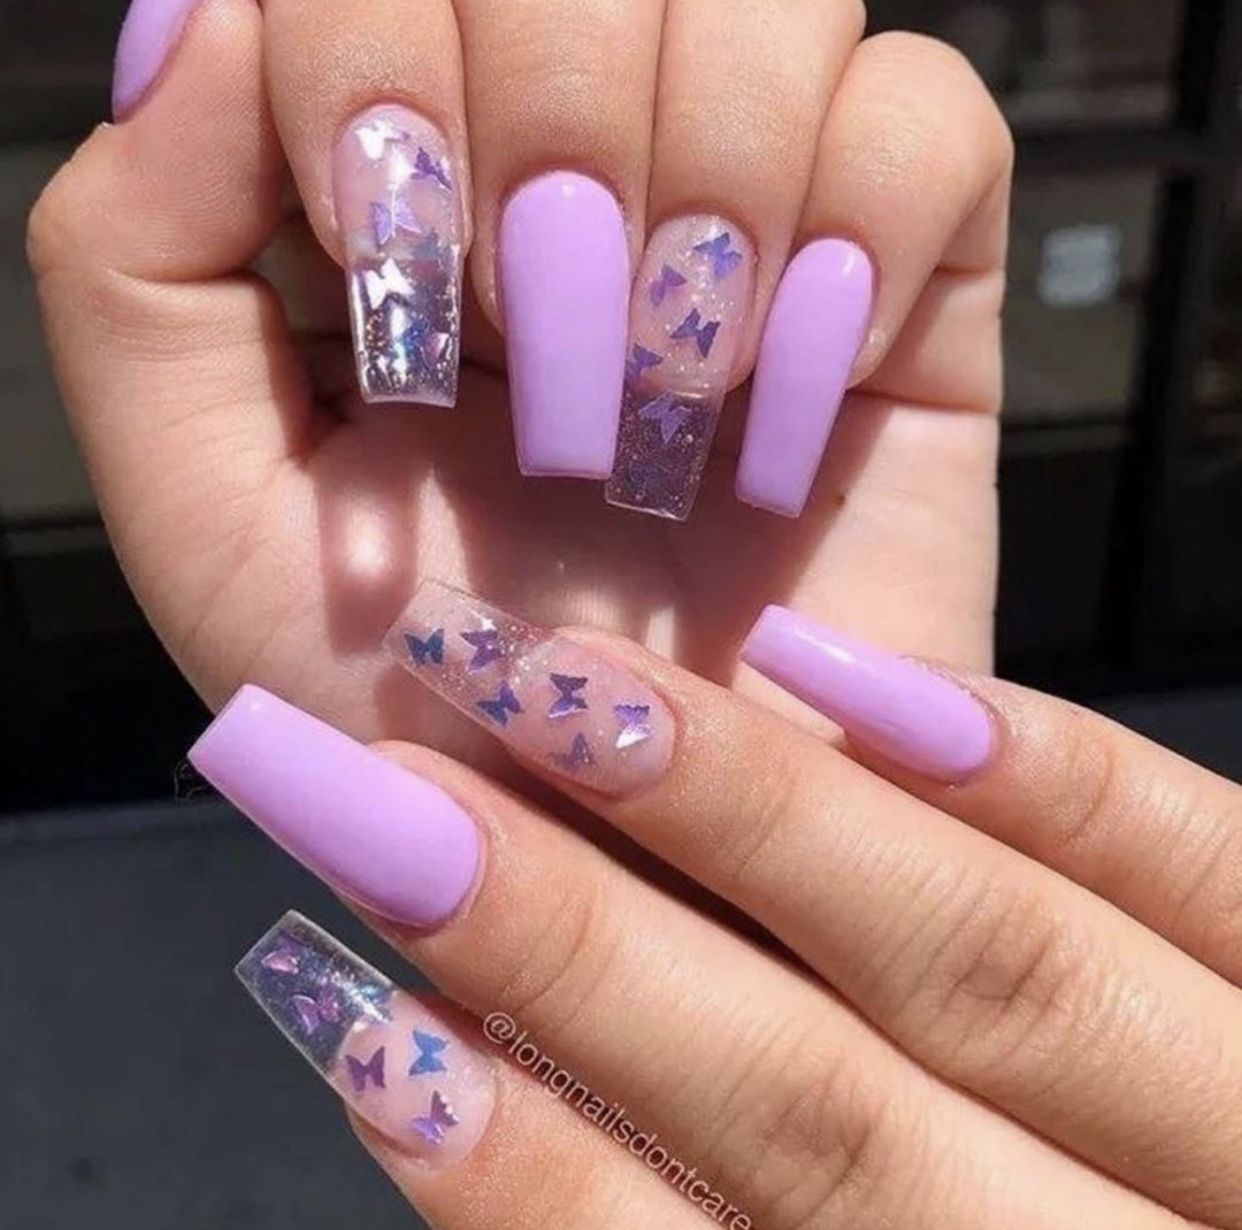 Pin By Sarah Sultan On Nails Purple Acrylic Nails Long Square Acrylic Nails Green Acrylic Nails